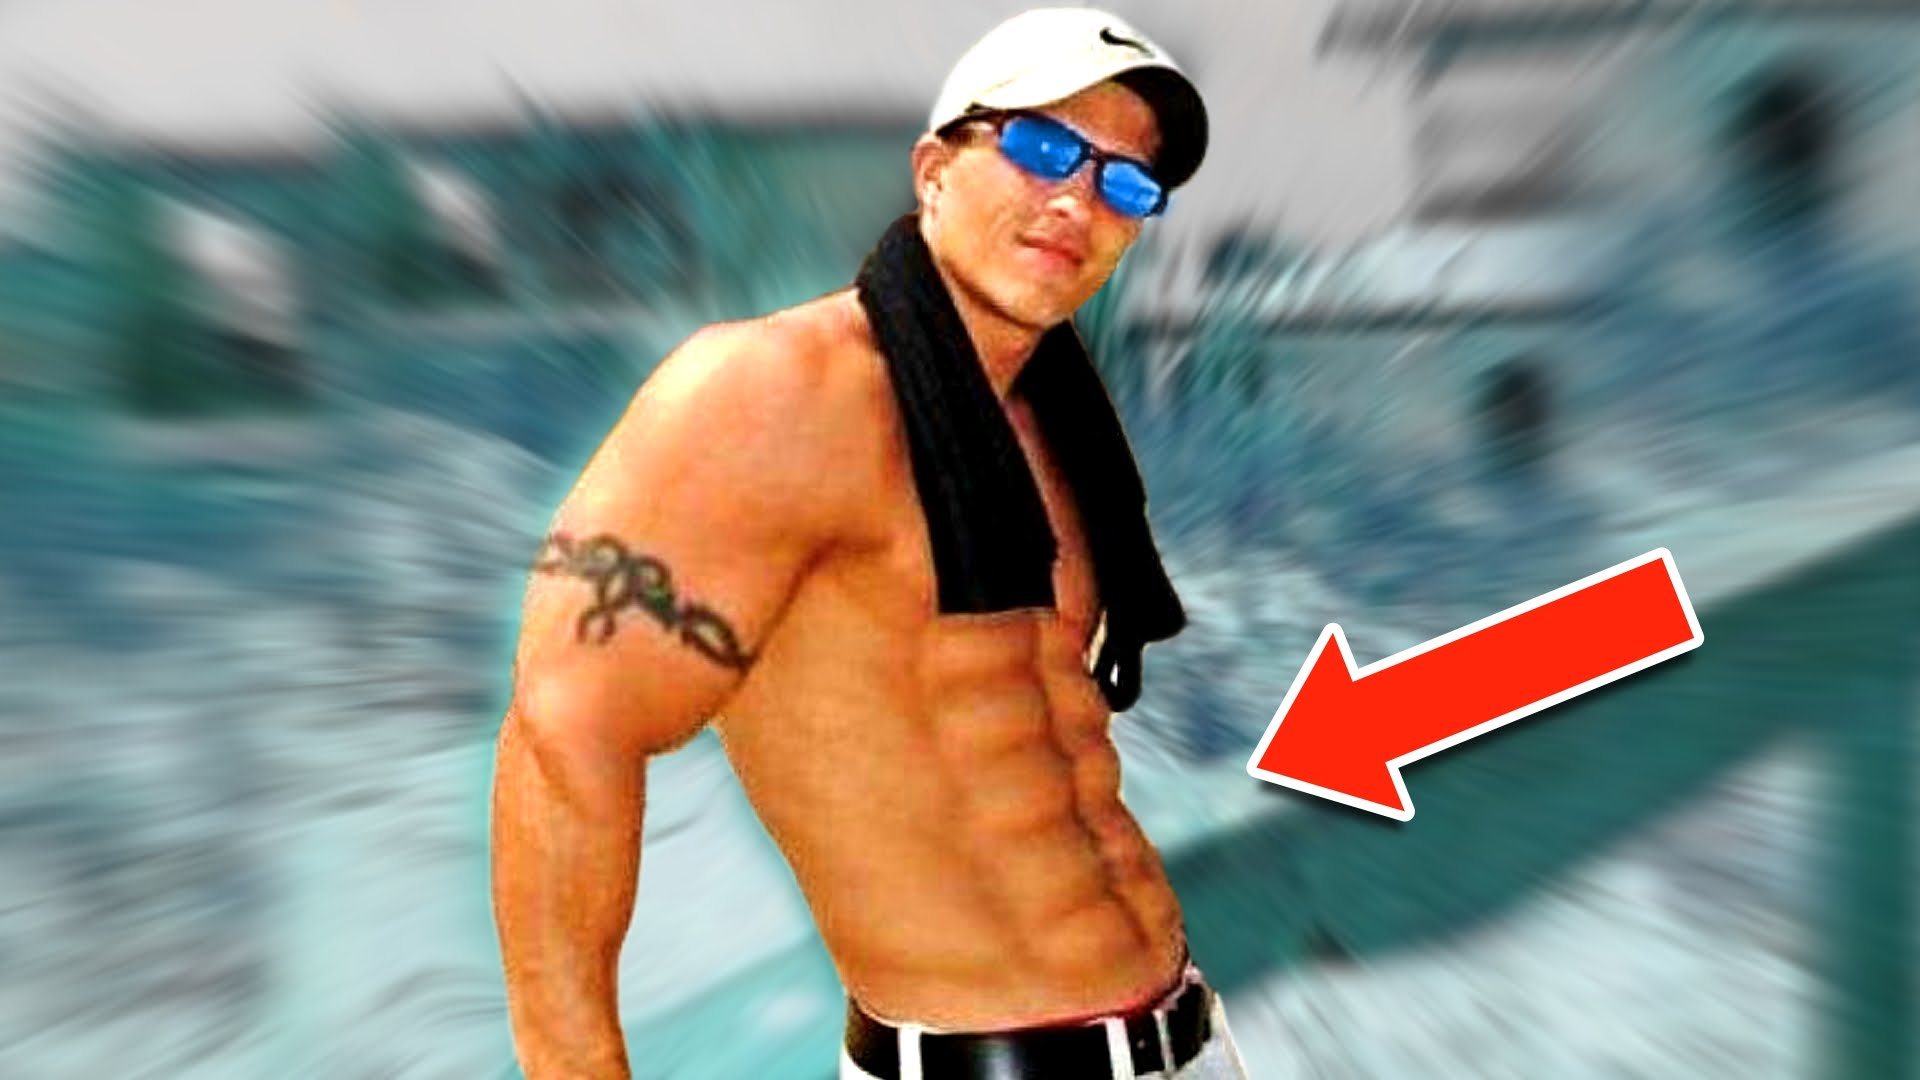 17 Terrible Photoshop Fails You Have Ever Gone Through